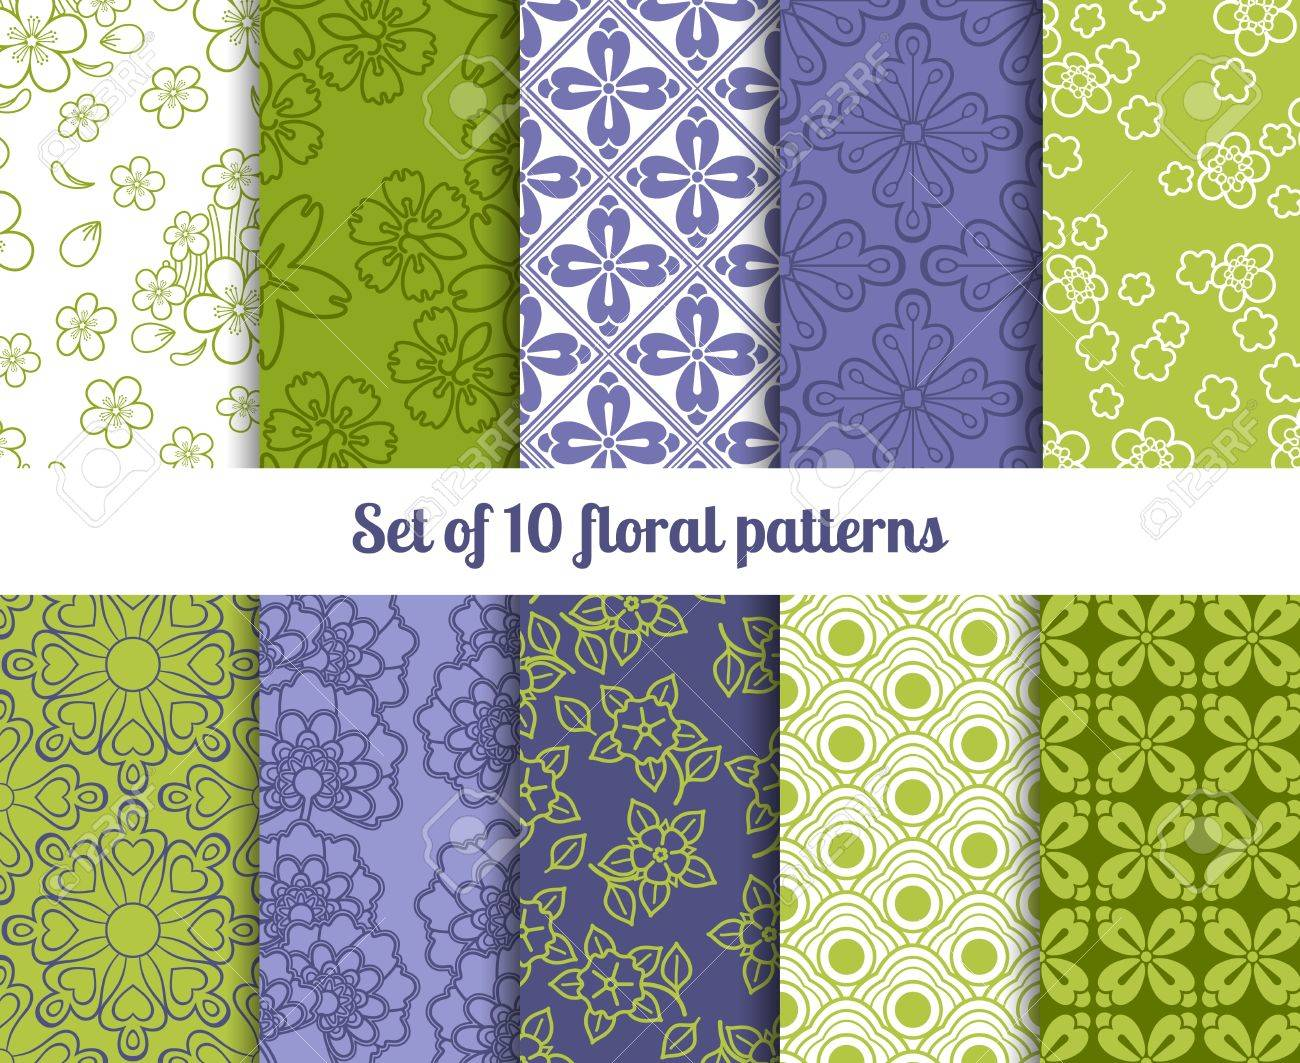 Download Wallpaper High Quality Pattern - 38680411-high-quality-floral-wallpaper-patterns-for-backgrounds-and-invitations  Snapshot_223488.jpg